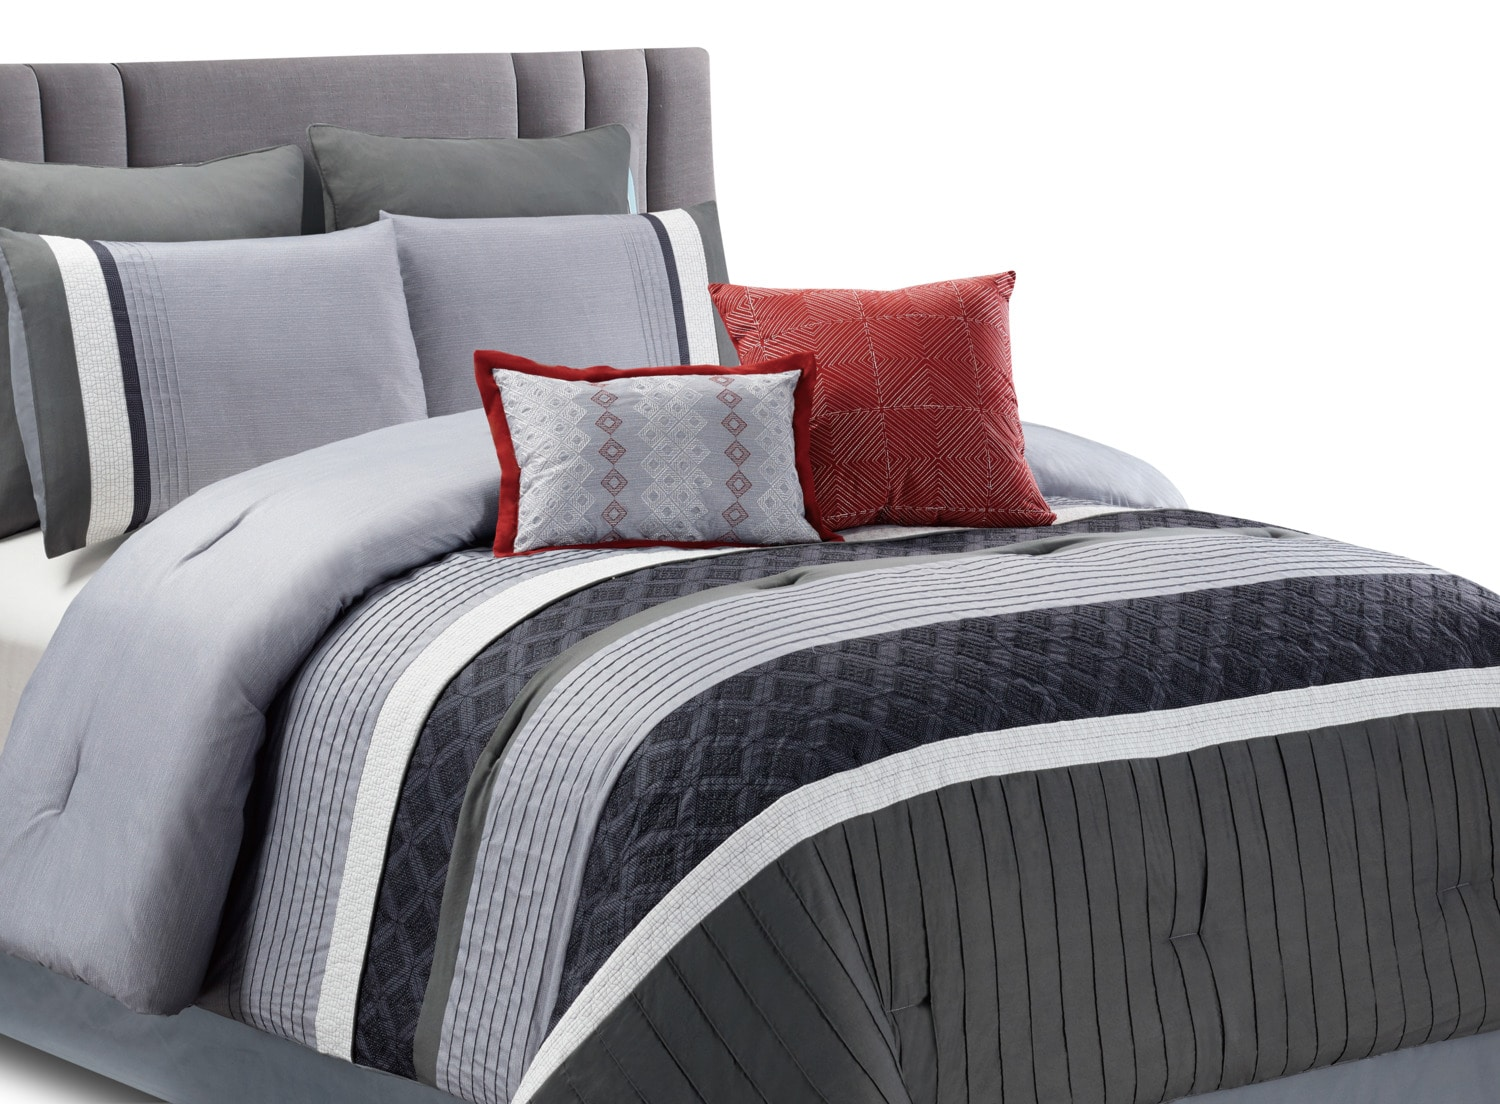 Meridian 8-Piece Queen Comforter Set